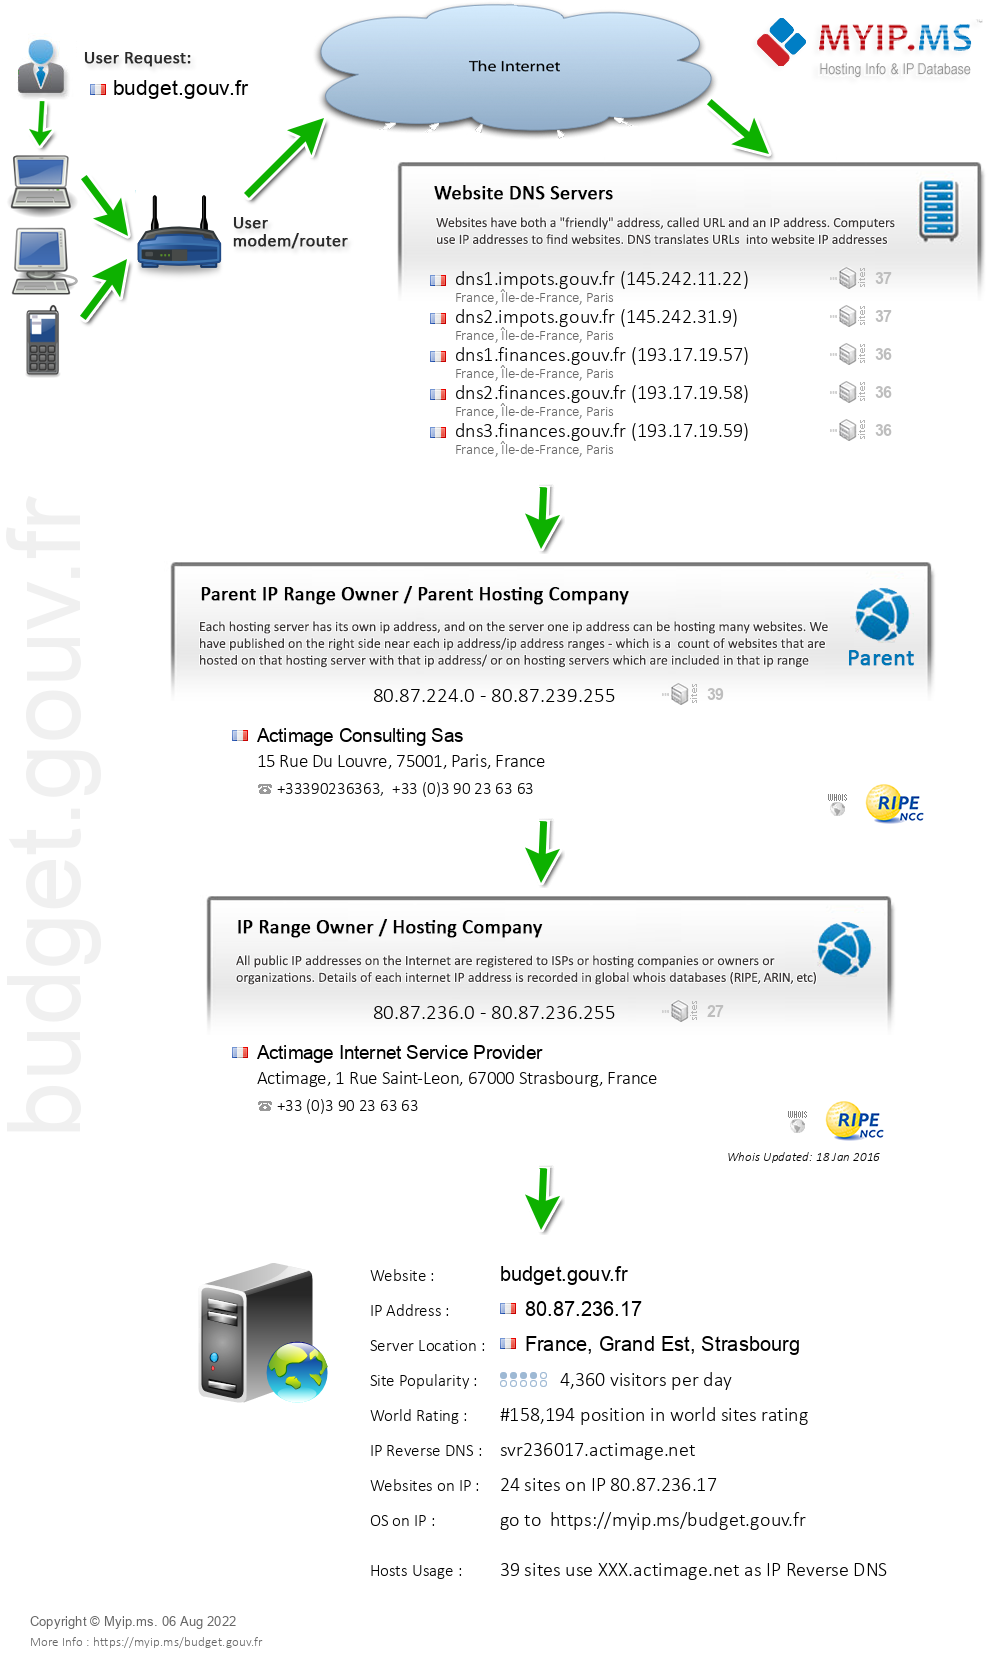 Budget.gouv.fr - Website Hosting Visual IP Diagram